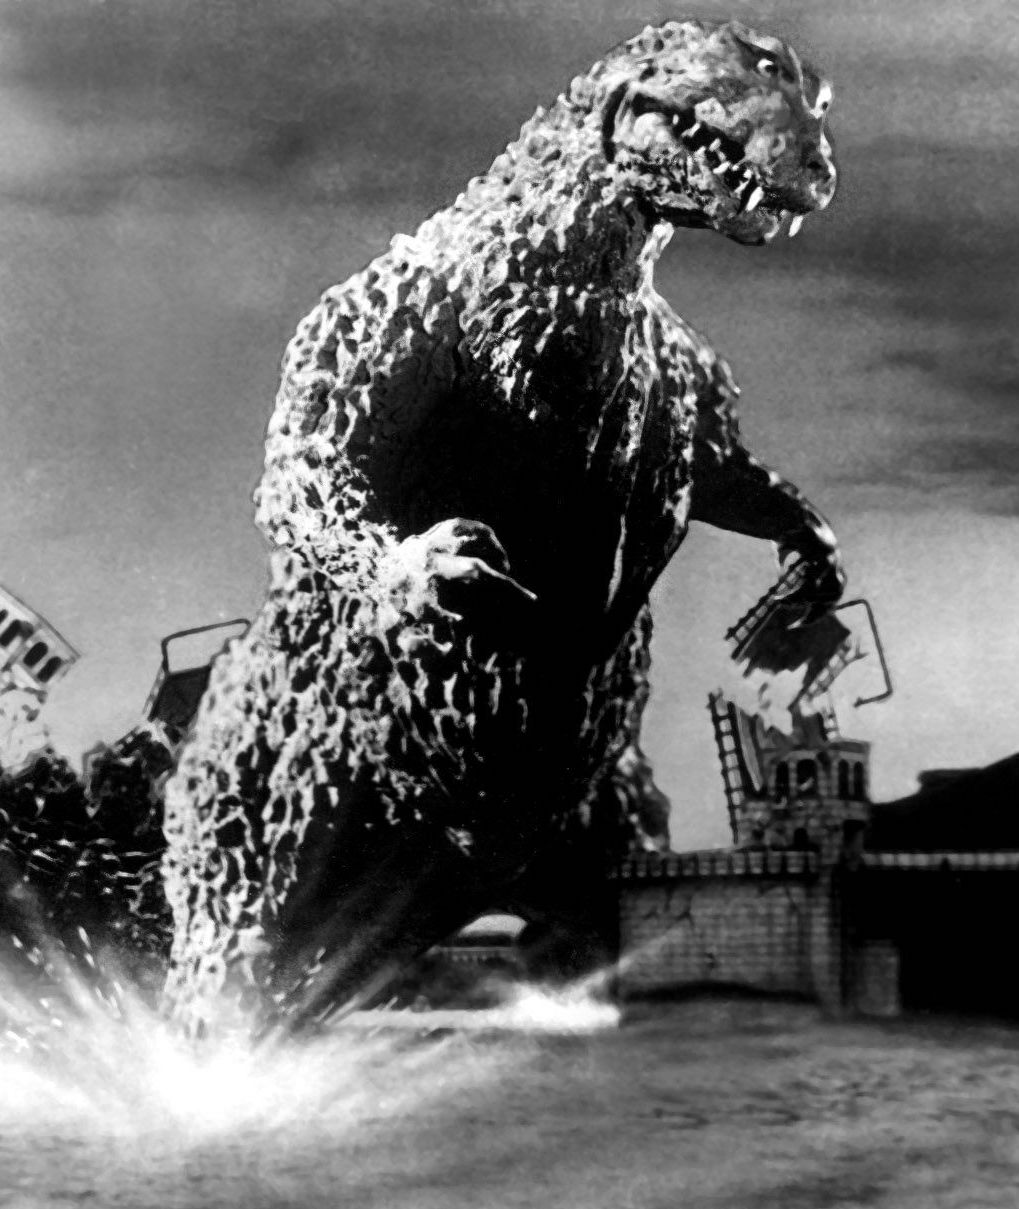 movies godzilla 1954 still 01 25 Things You Probably Missed In Jurassic Park